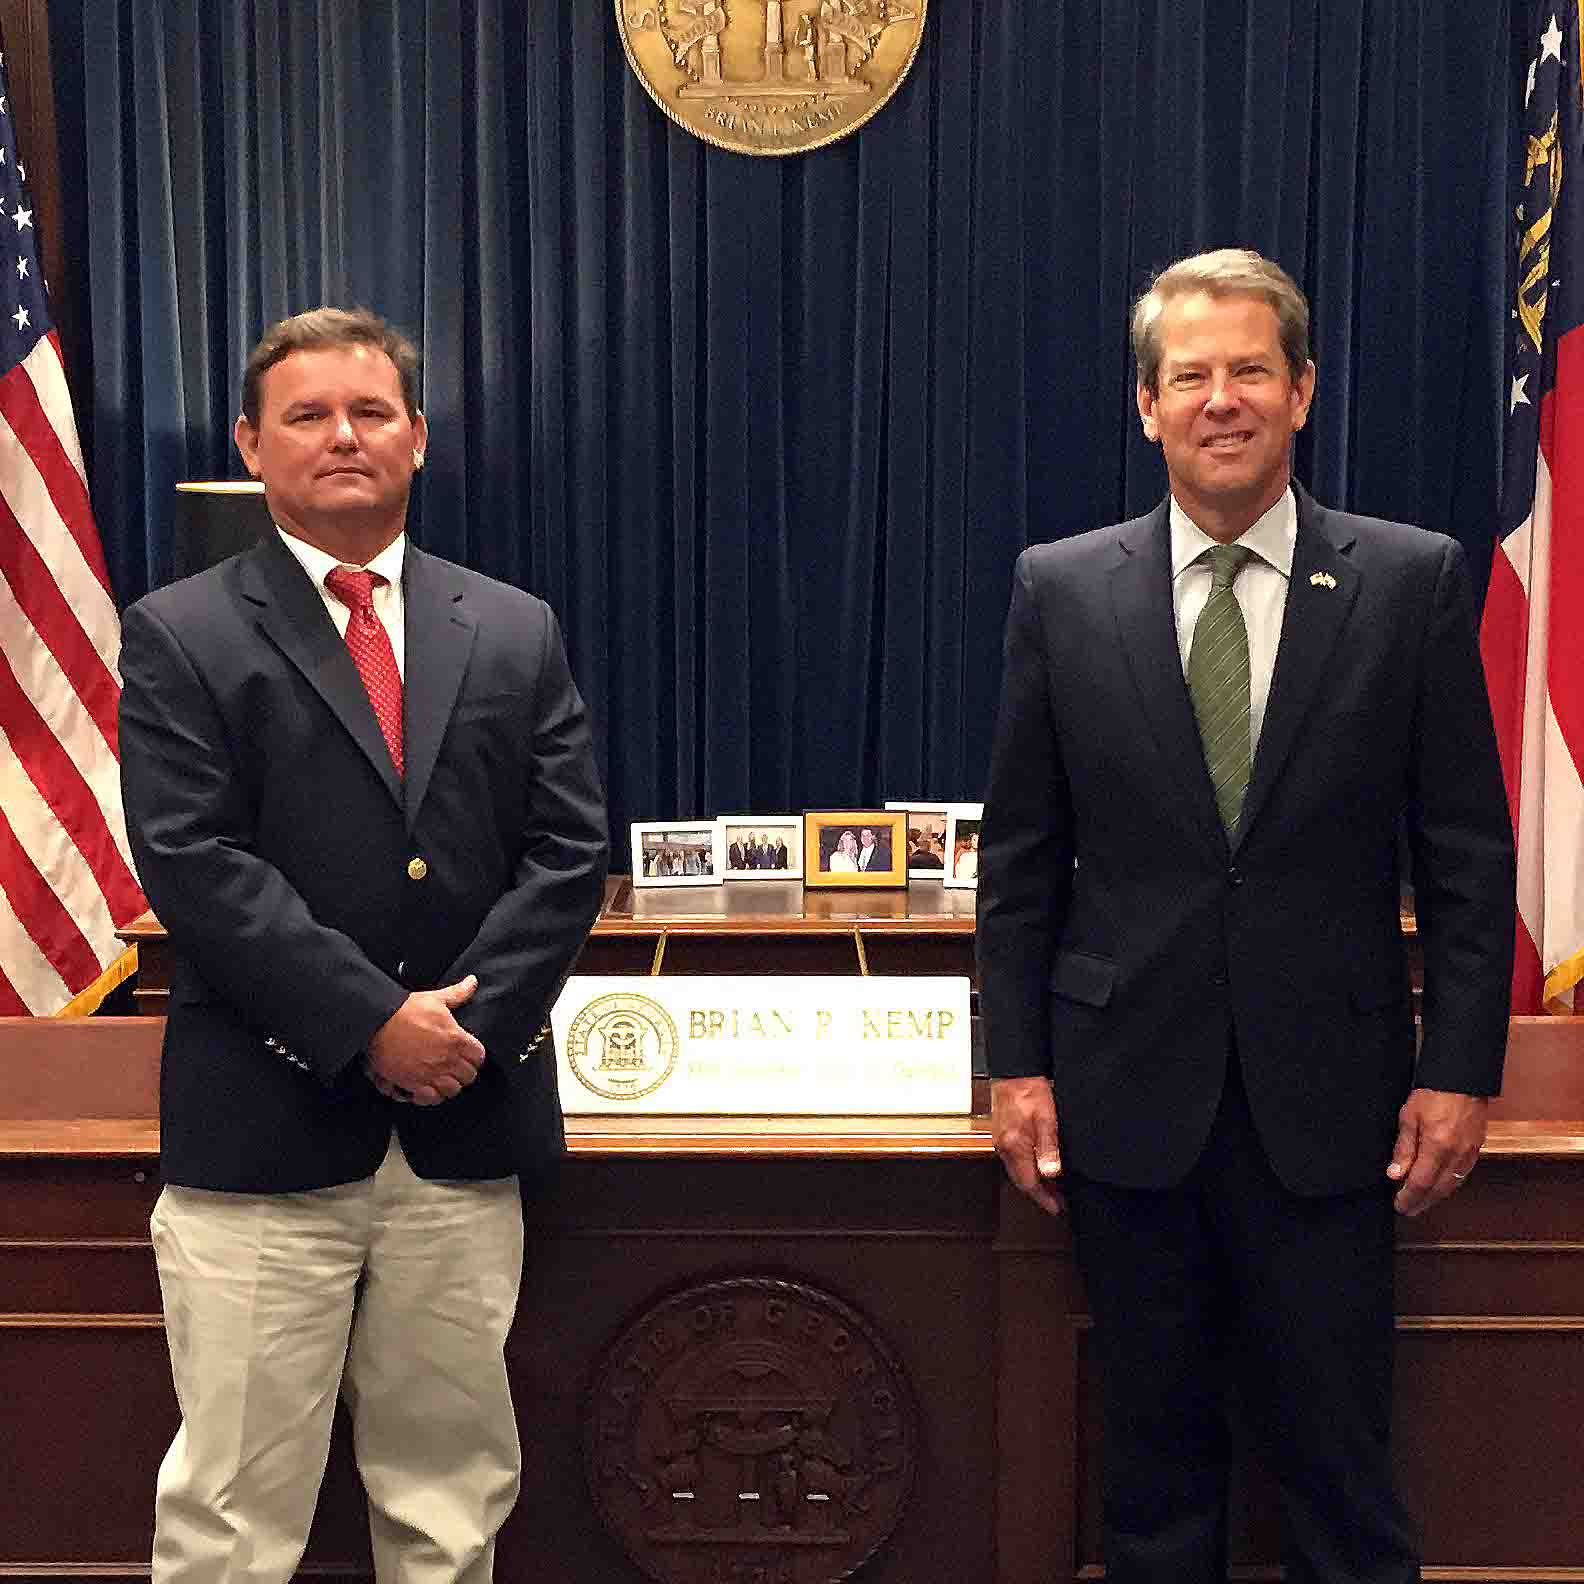 Governor Brian Kemp recognized Lee Nunn of Madison, Georgia, as the 2020 Farmer of the Year on July 8, 2020.